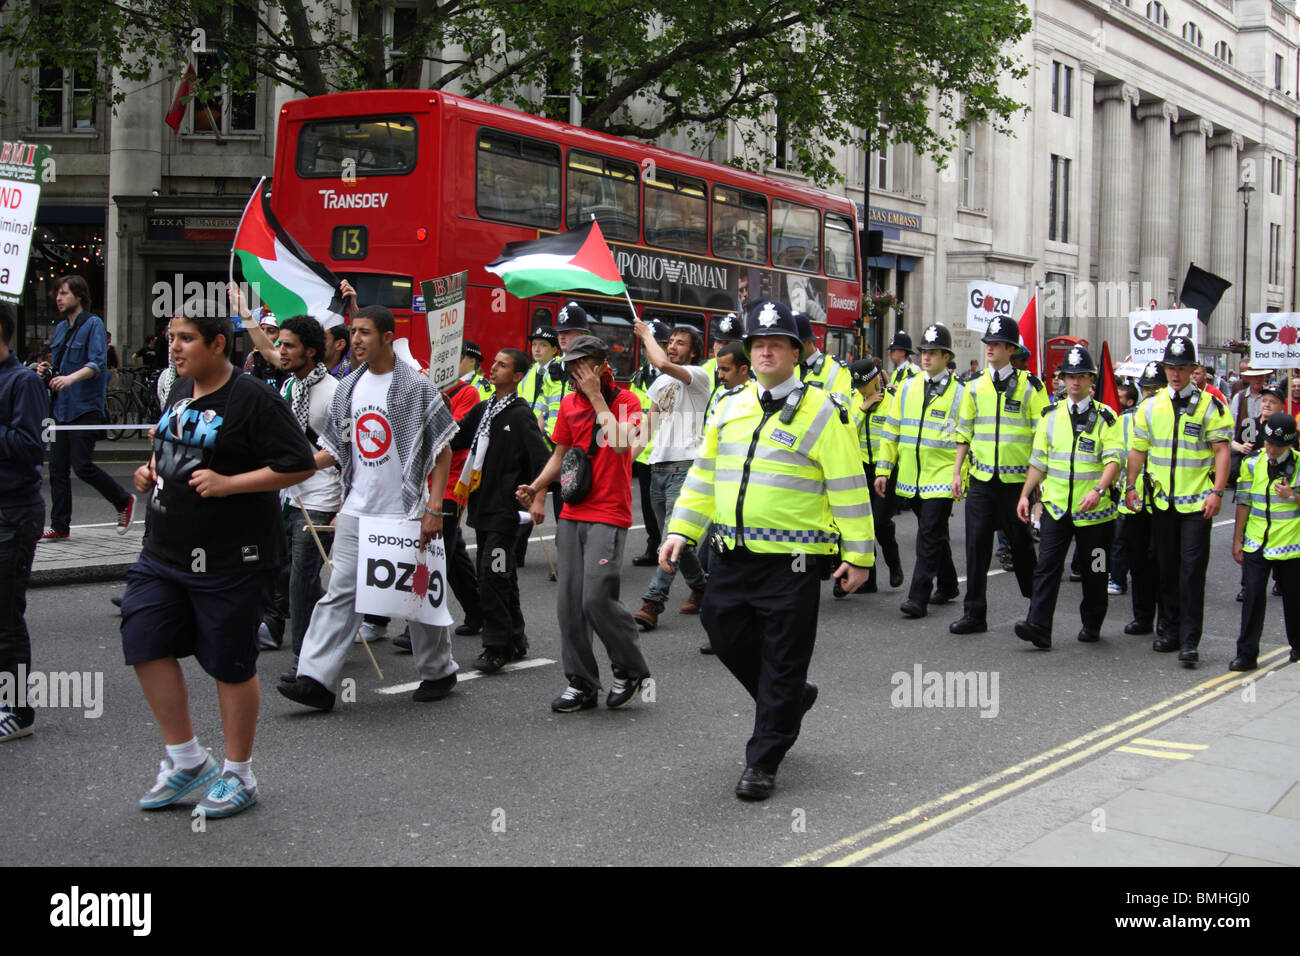 Demonstrators at the 'Freedom for Palestine' demonstration in London, England, U.K. - Stock Image